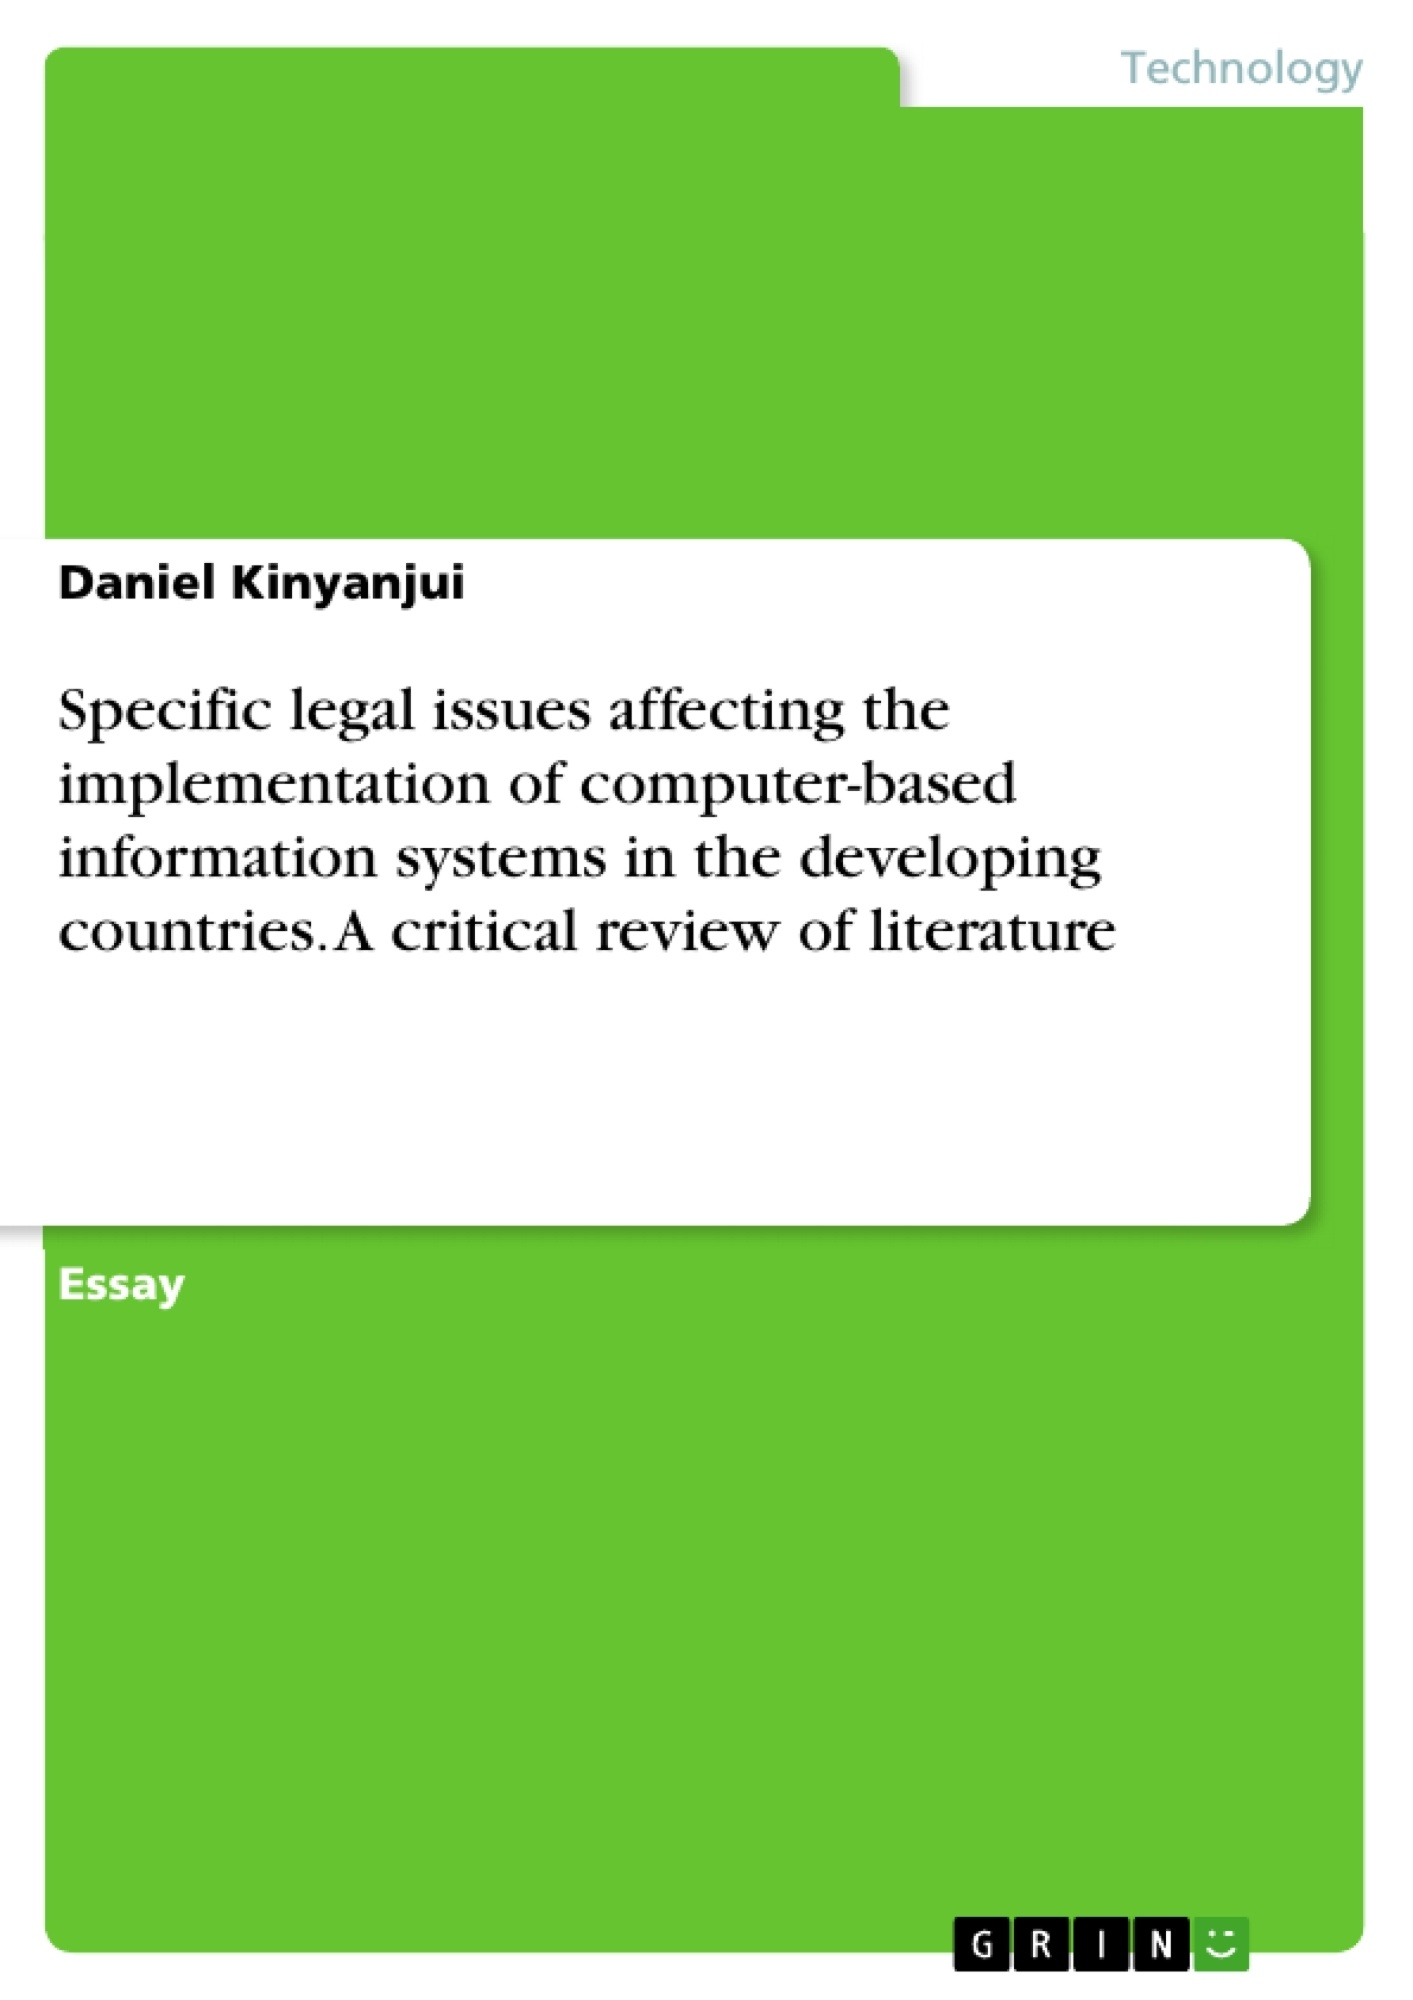 Title: Specific legal issues affecting the implementation of computer-based information systems in the developing countries. A critical review of literature